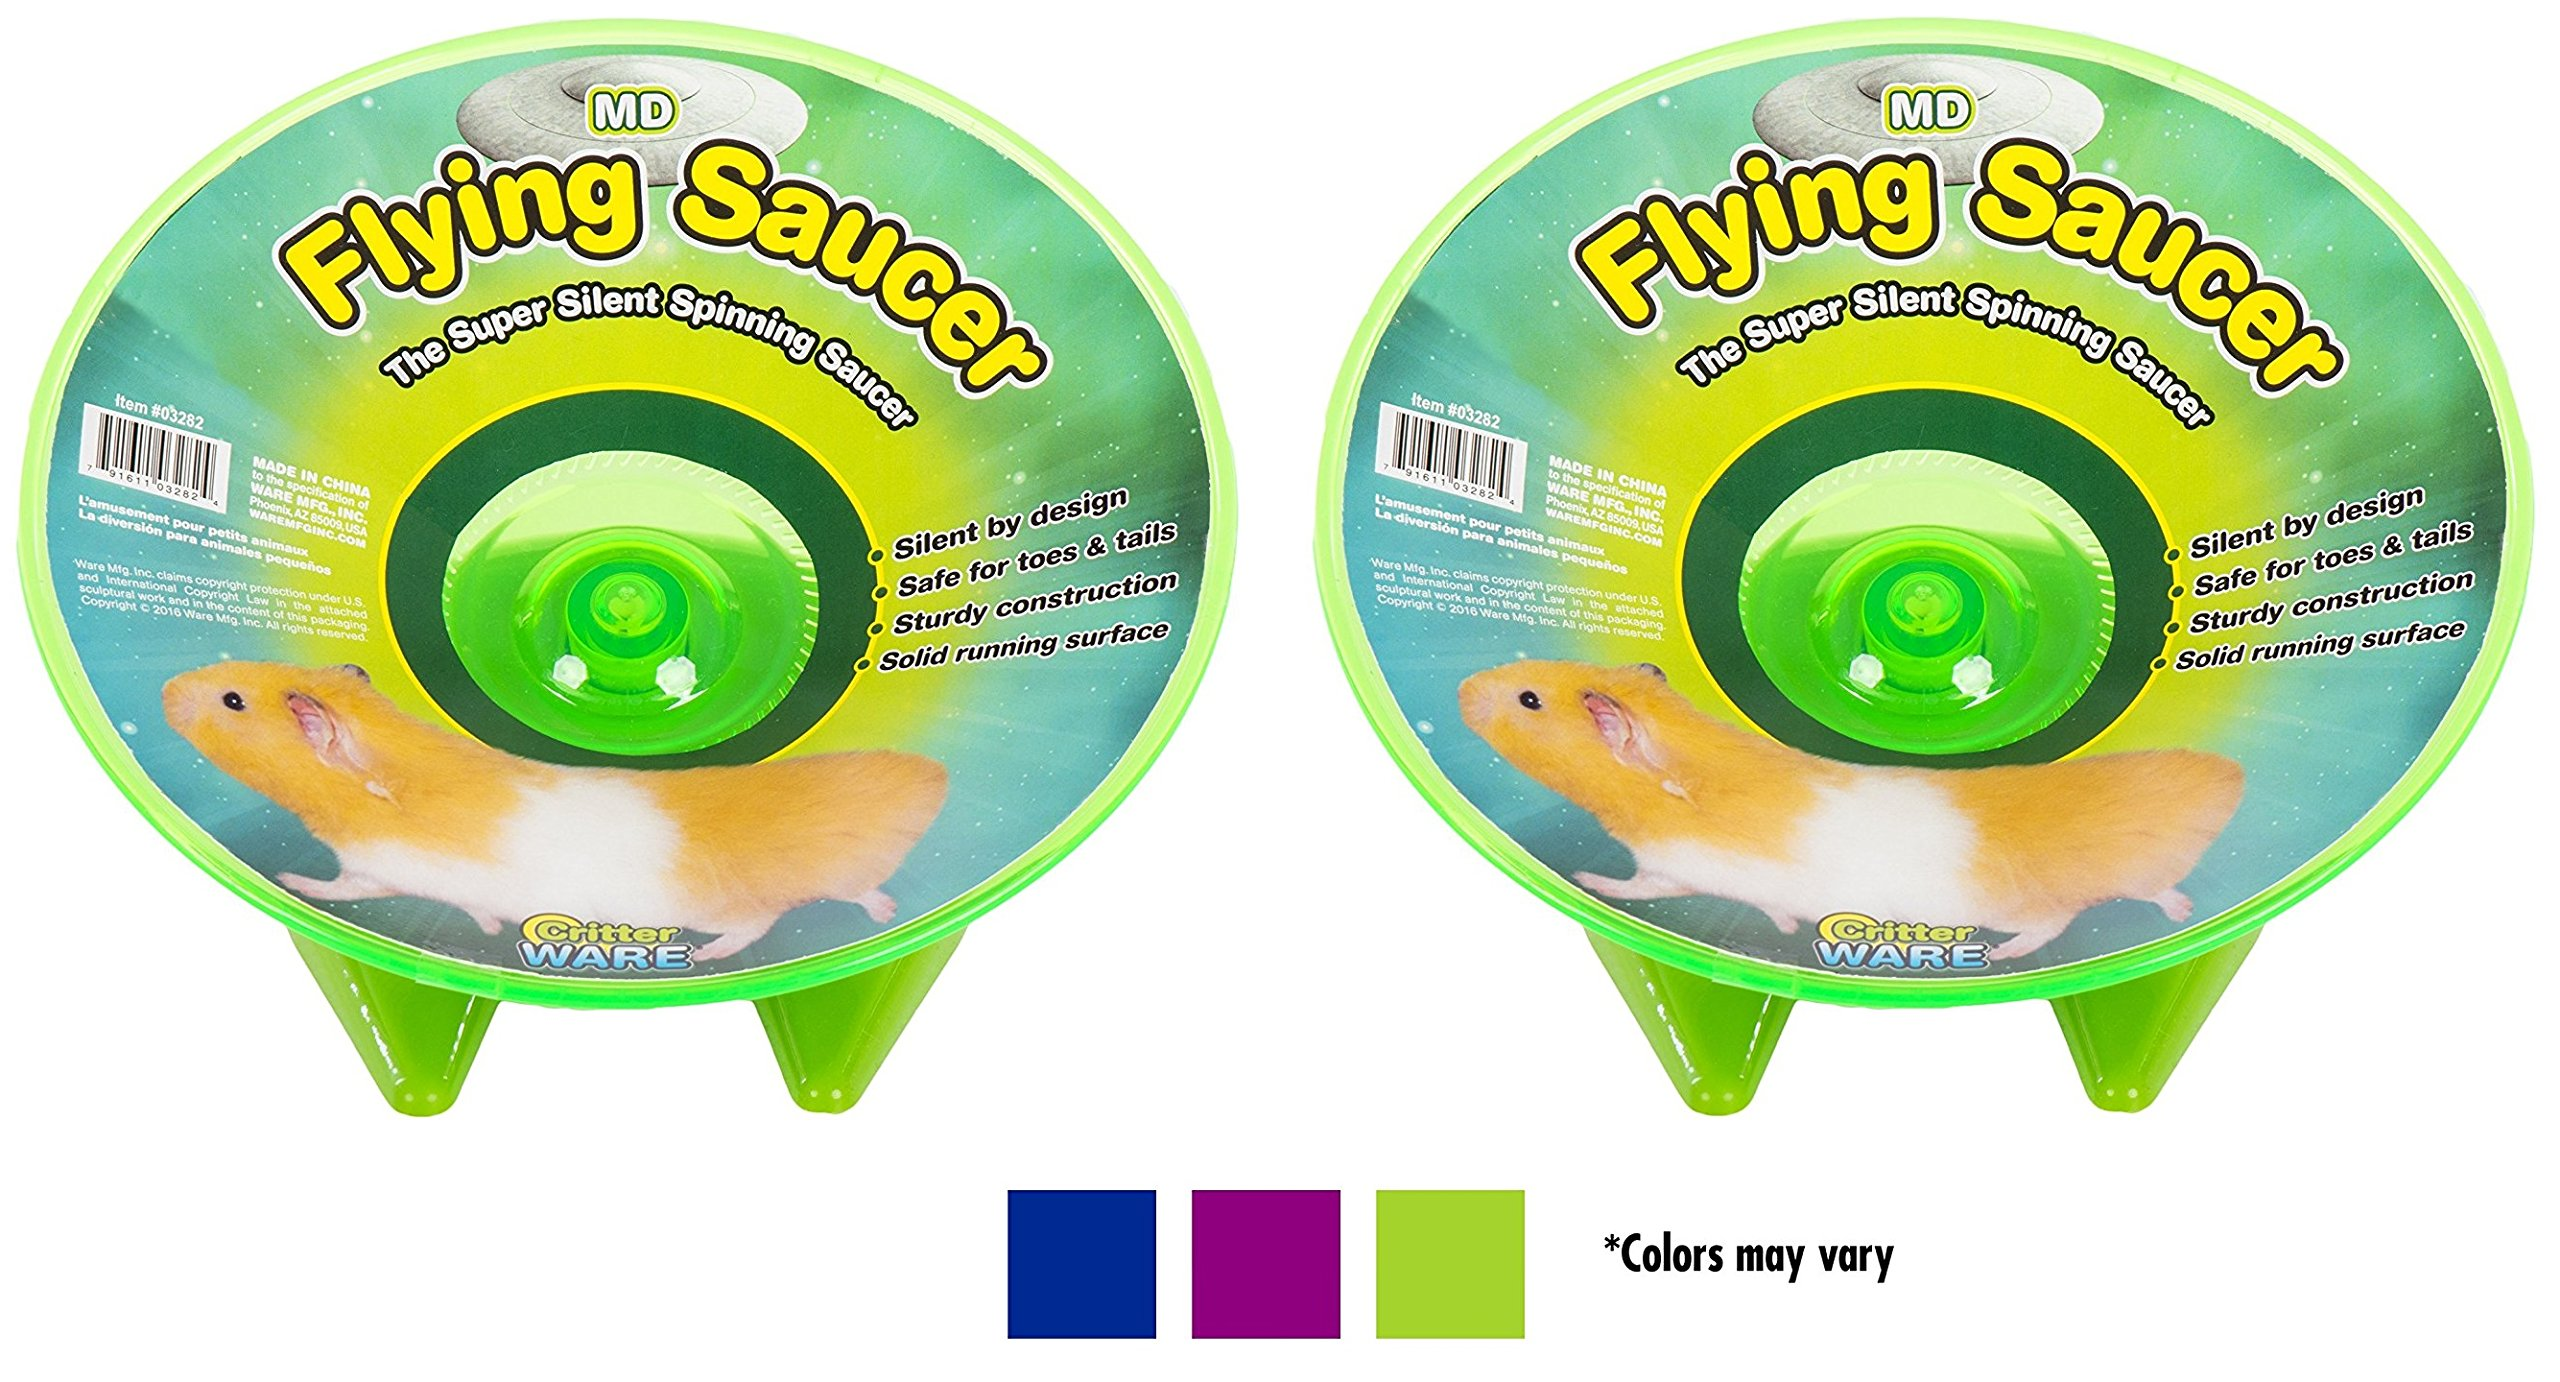 (2 Pack) Ware Flying Saucer Small Pet Exercise Wheels, 7-1/4-Inch, Medium, Colors May Vary by Ware Manufacturing